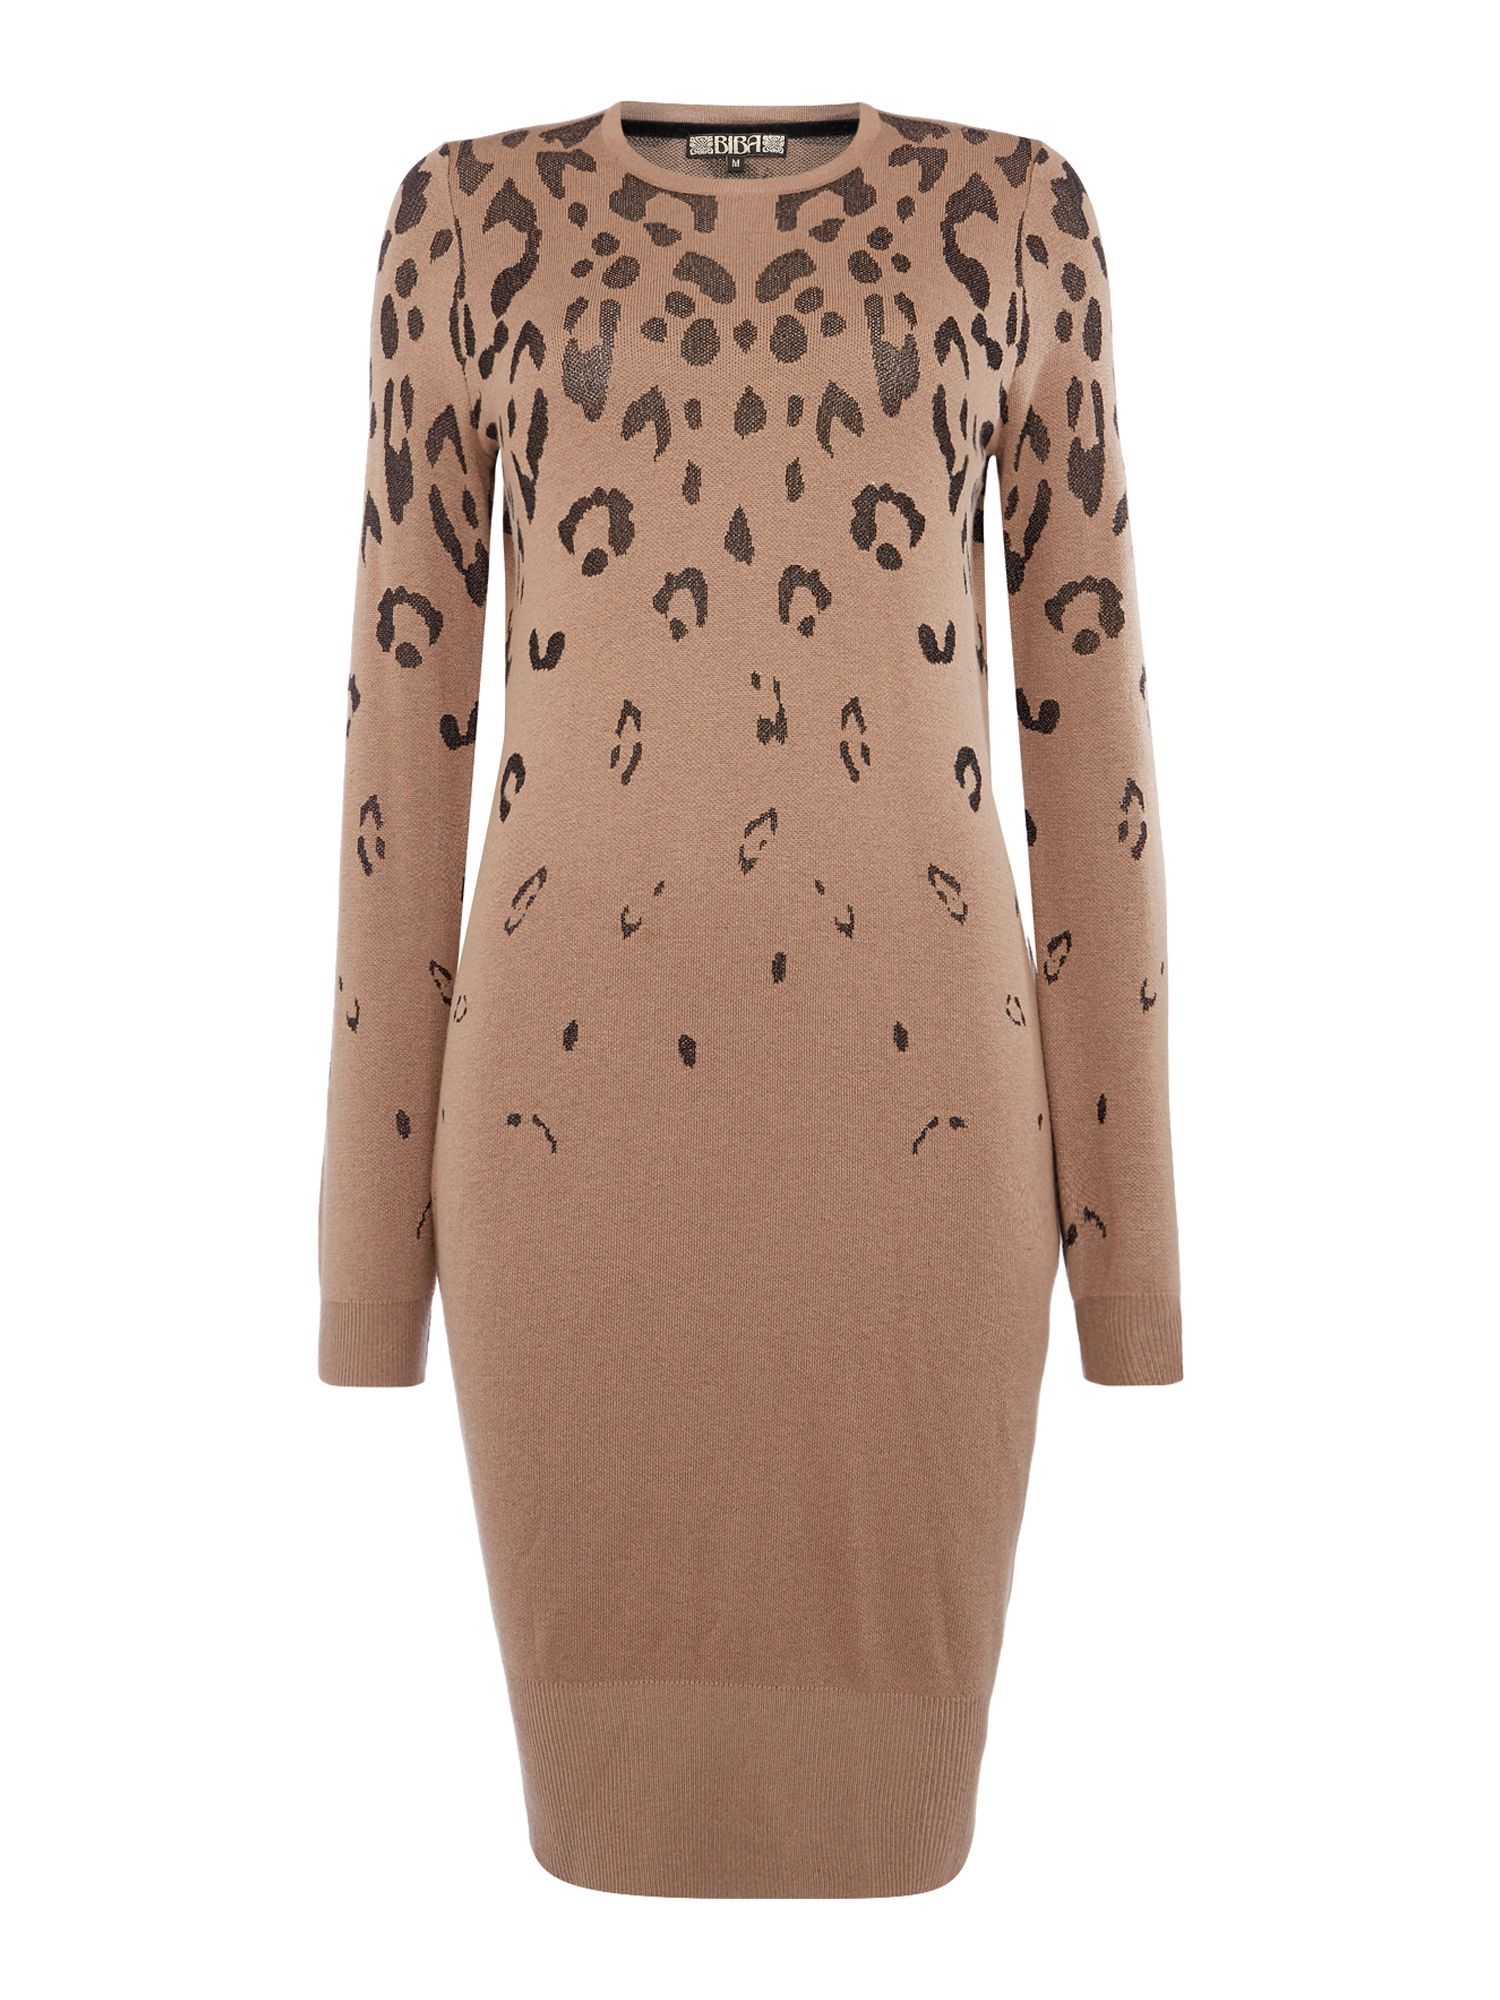 Biba Leopard metallic jumper dress, Taupe